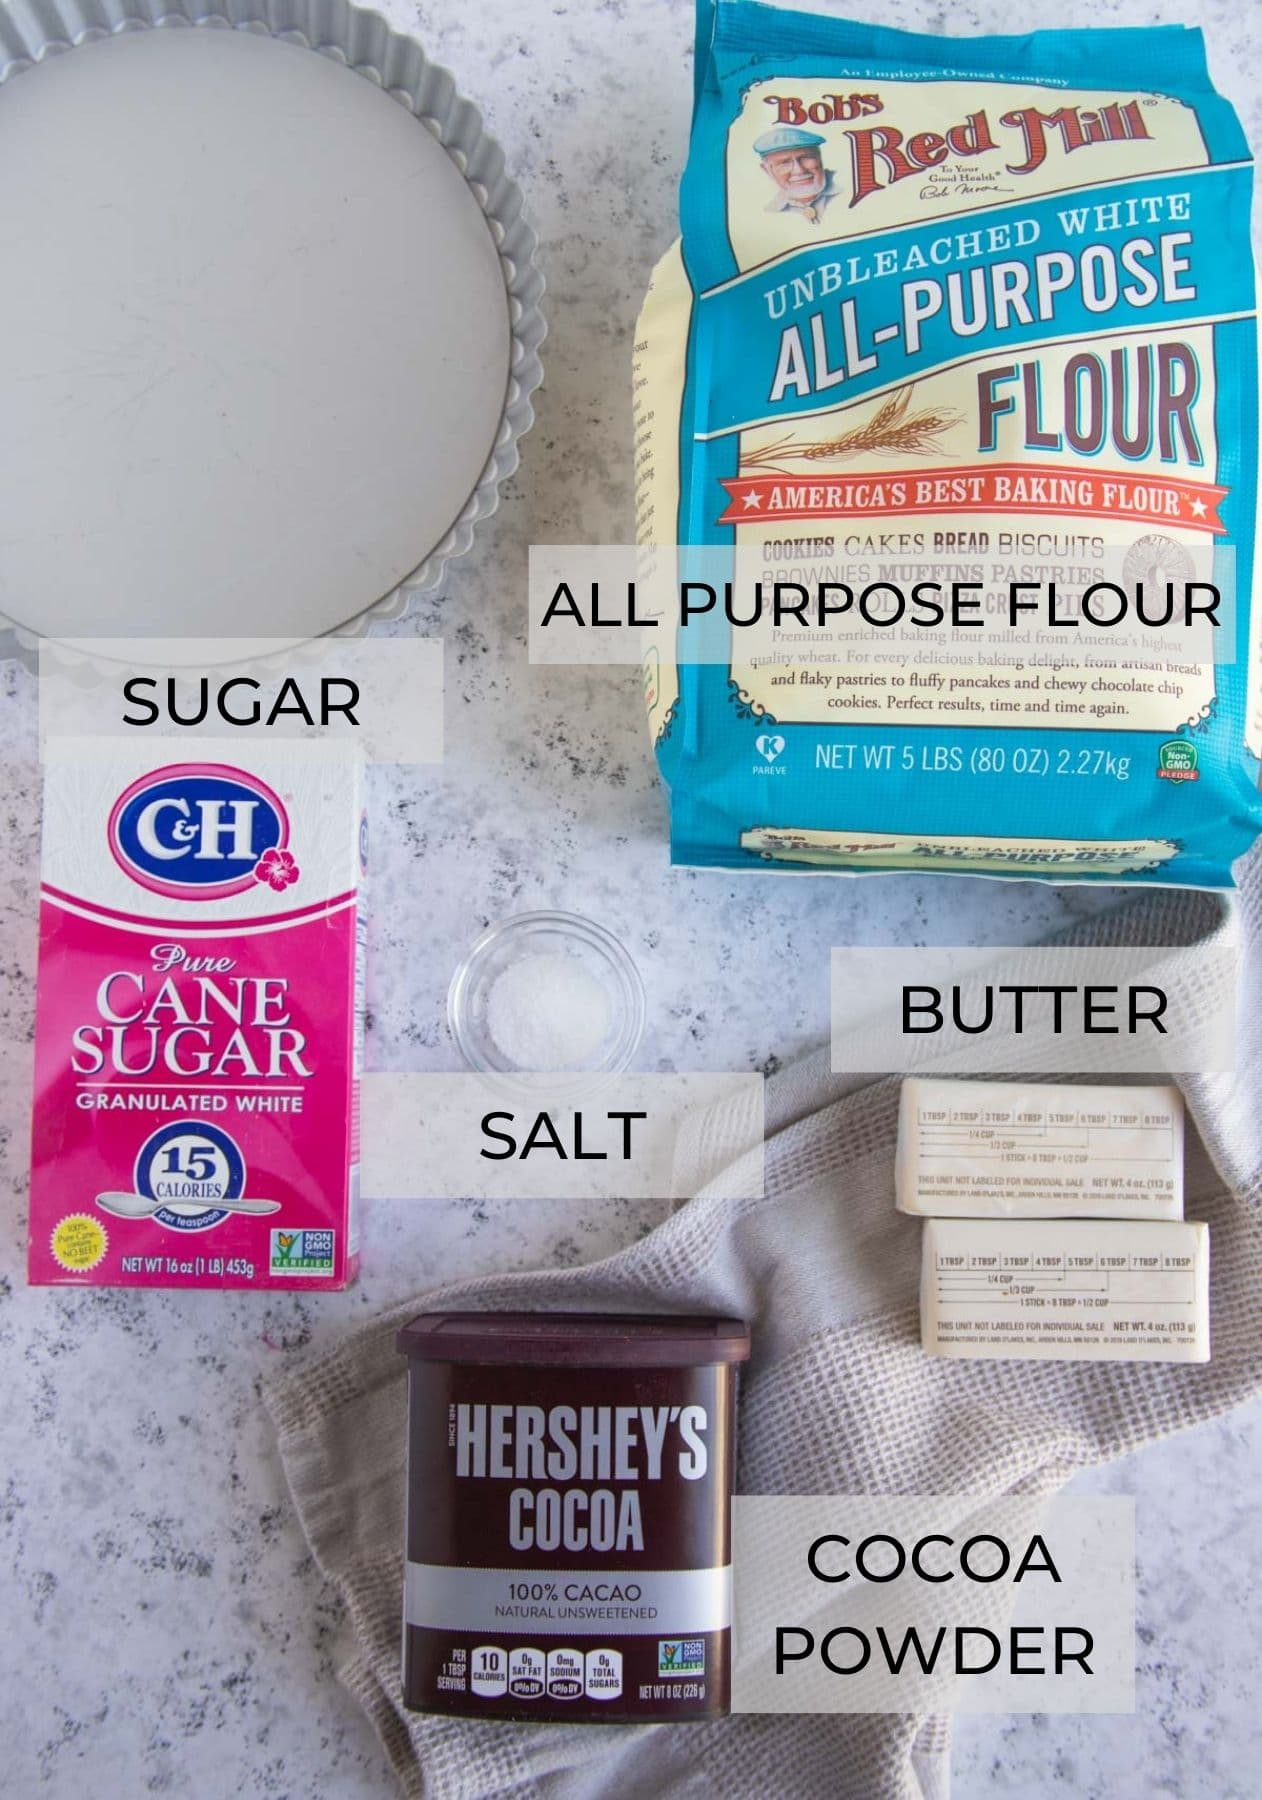 Chocolate Tart Ingredients - Flour, Sugar, Cocoa, Butter and Kosher Salt